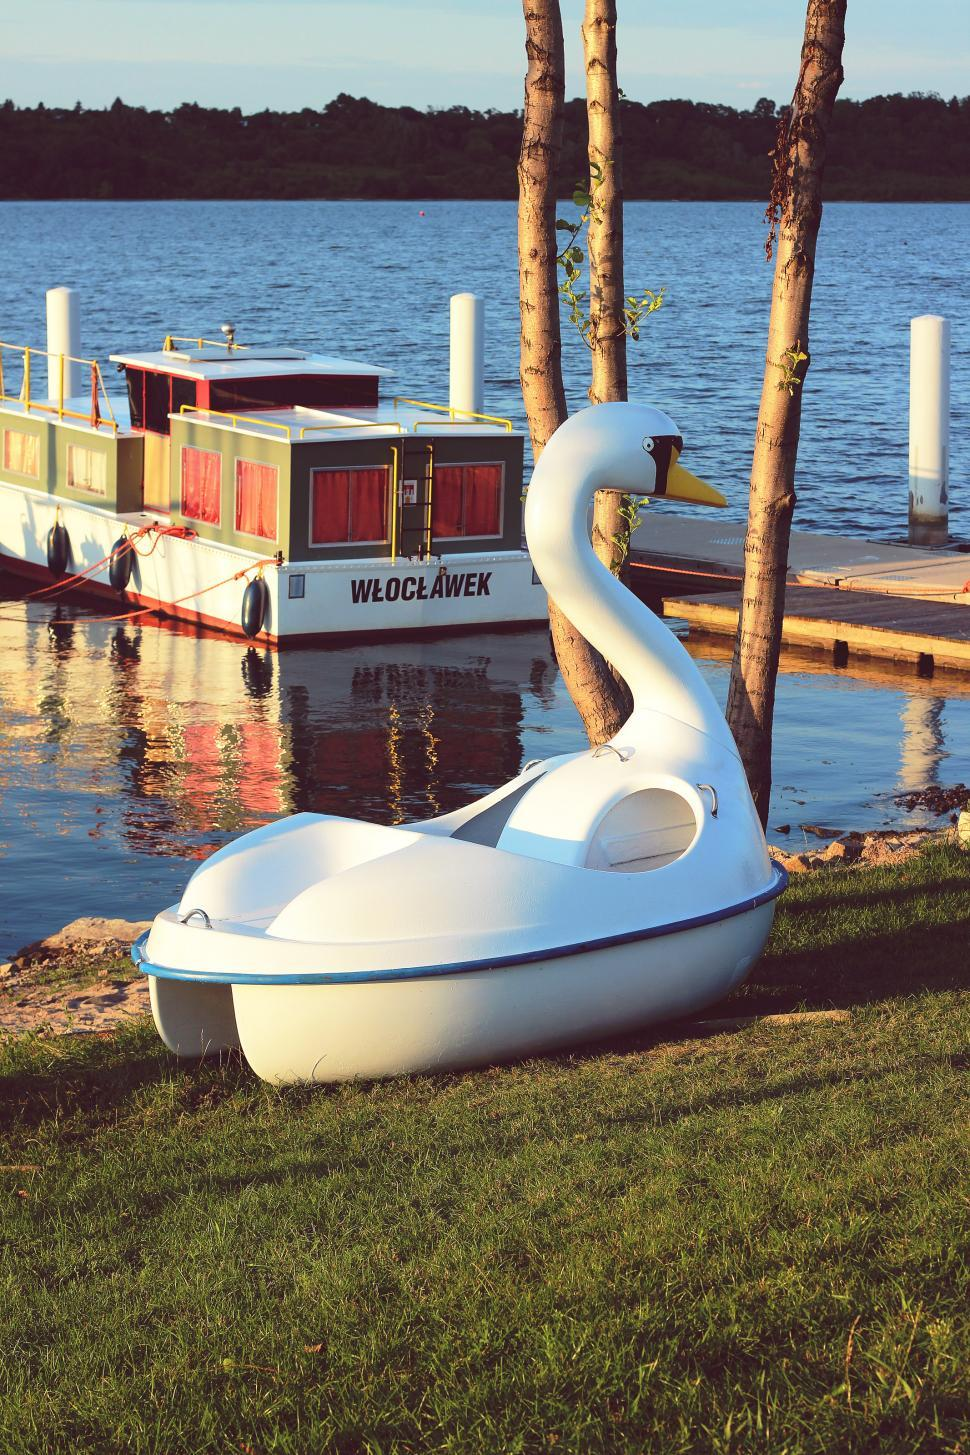 Download Free Stock Photo of Lake Swan Wloclawek WÃ…Â'ocÃ…Â'awek boat river sea vintage water waterscape boat vessel iron water